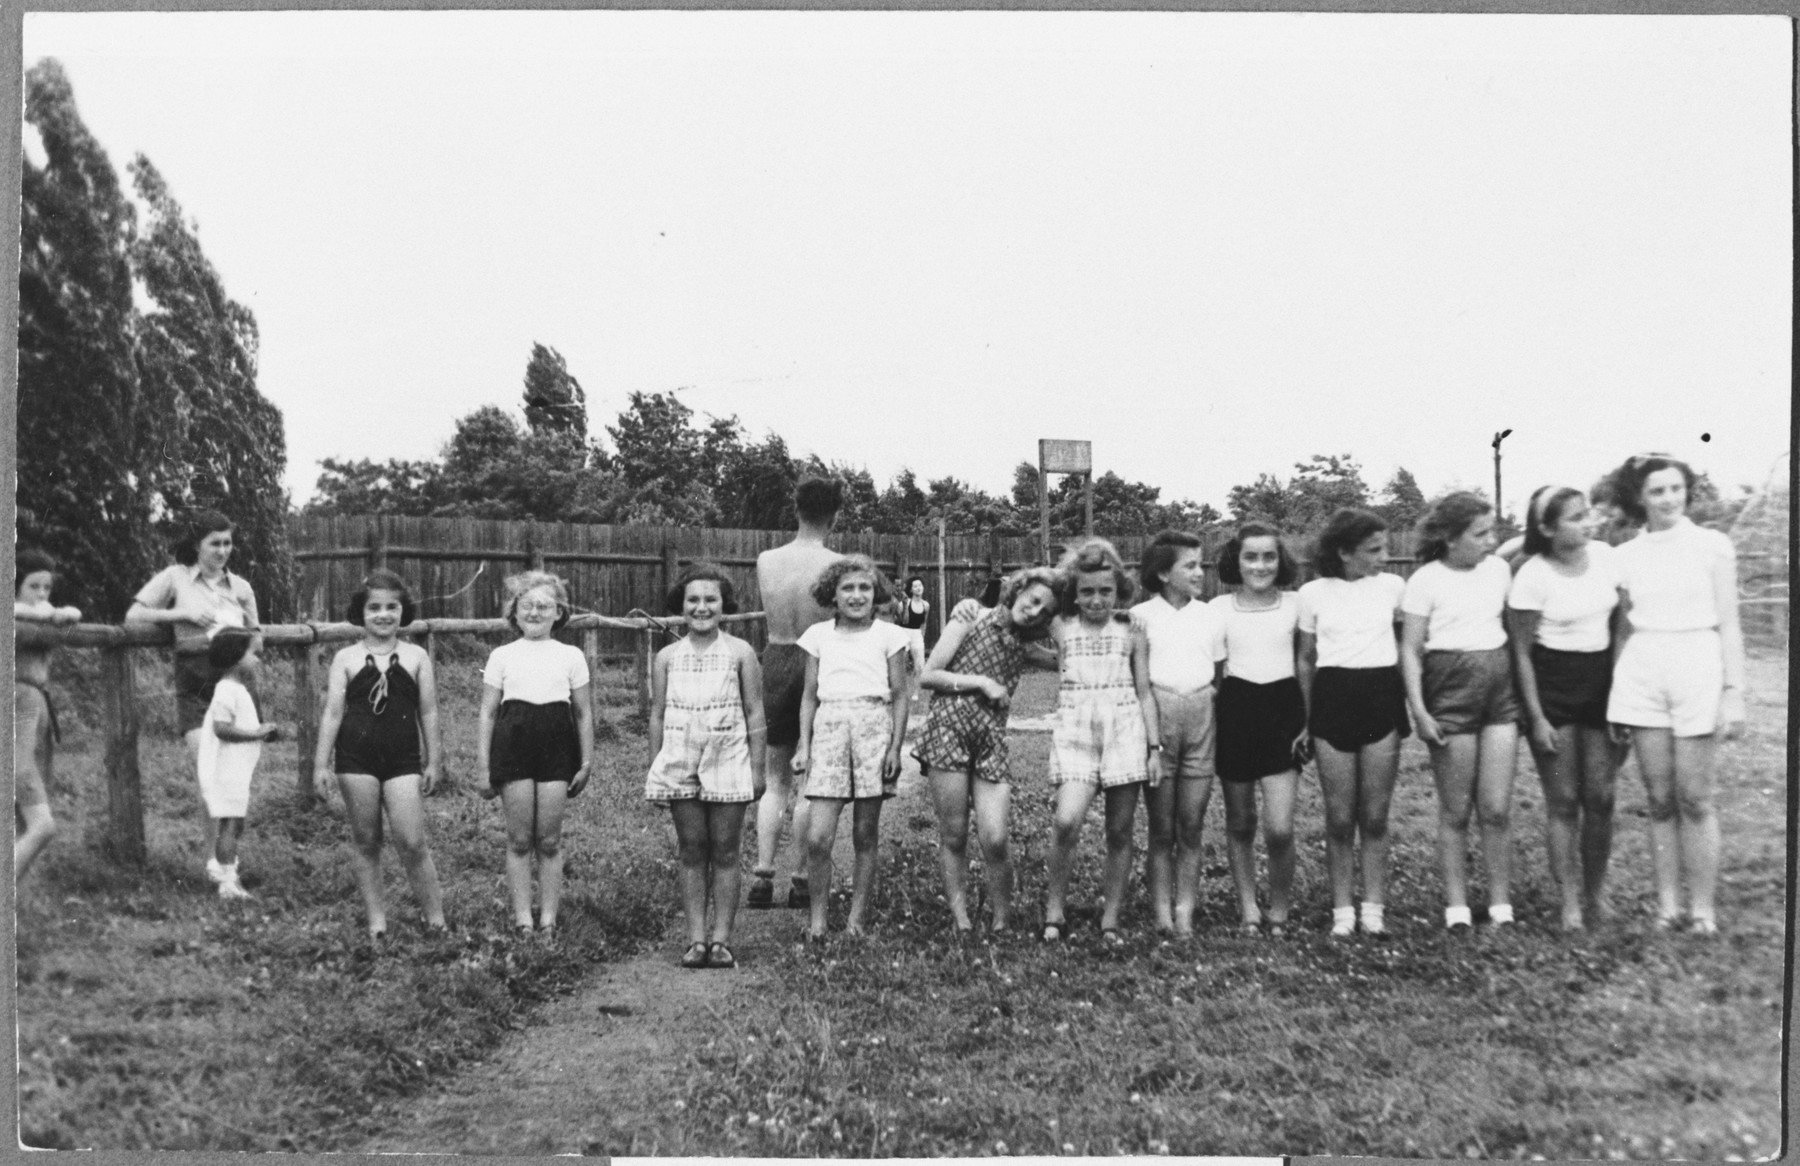 Youngs girls of a Maccabi youth pose on a field.   Among those pictured is the donor Maud Michal Stecklmacher (now Beer).